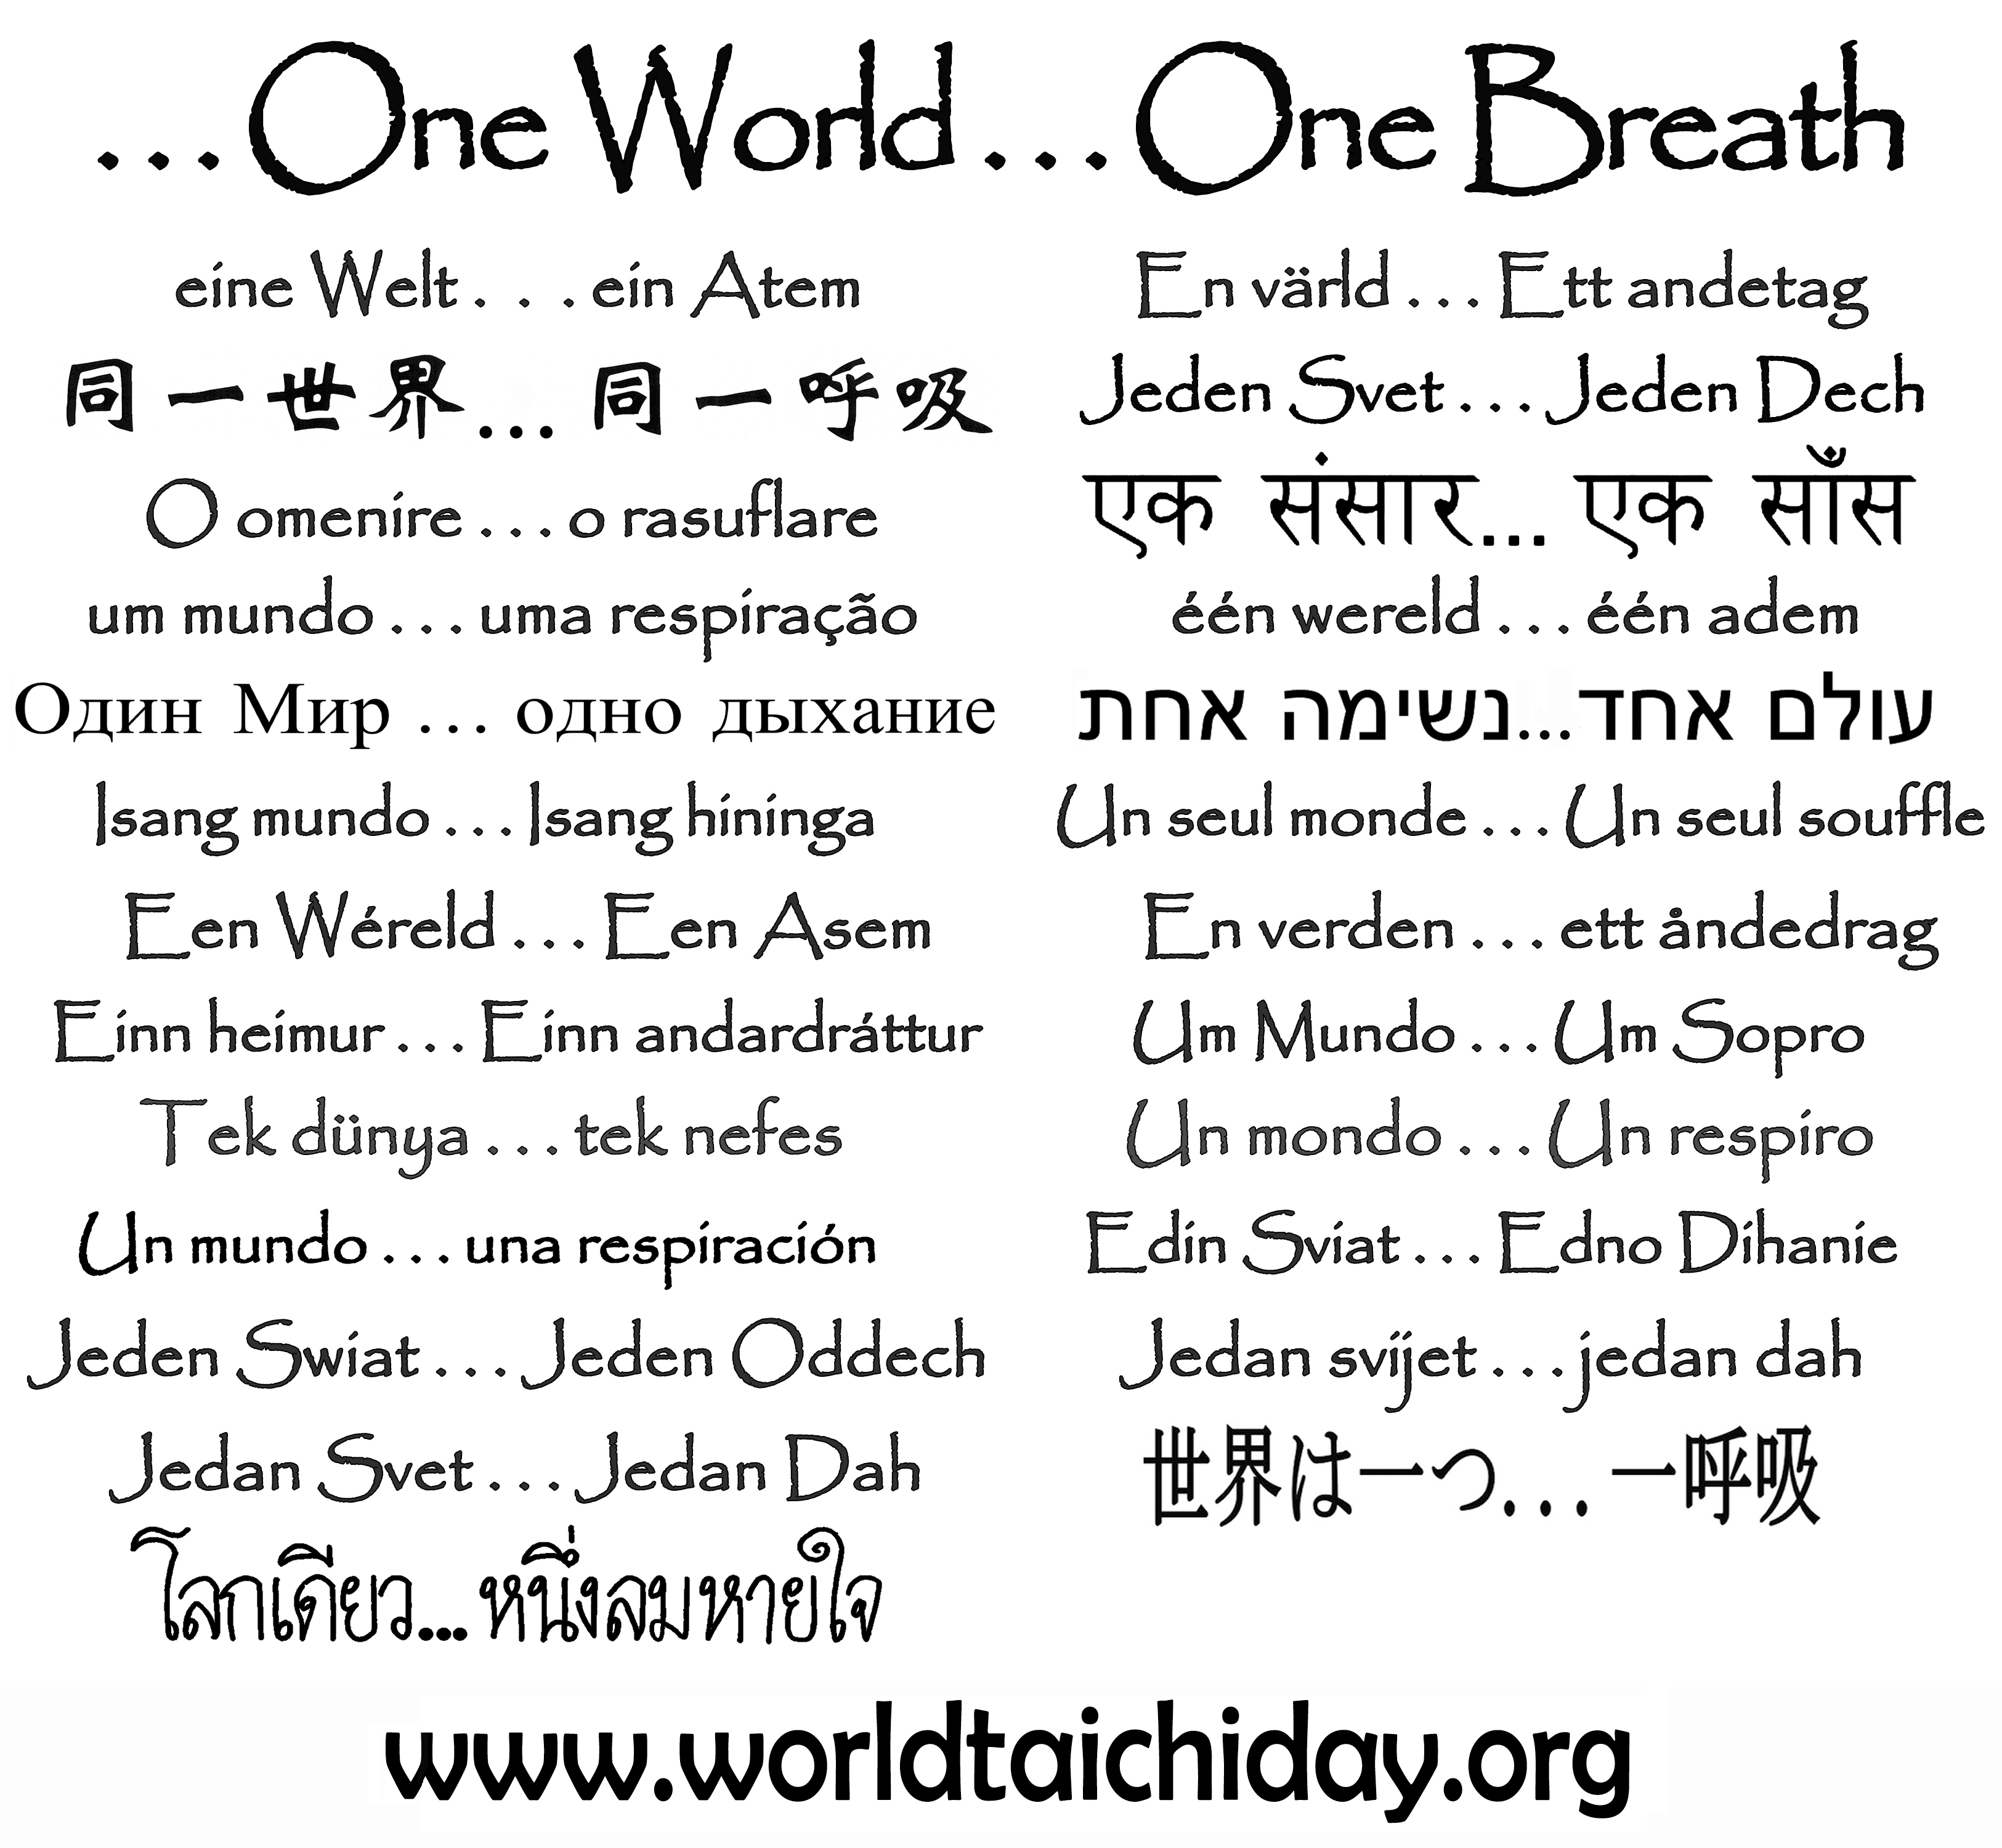 World Healing Days Founder Organizes Global Event Even As He - All languages in the world